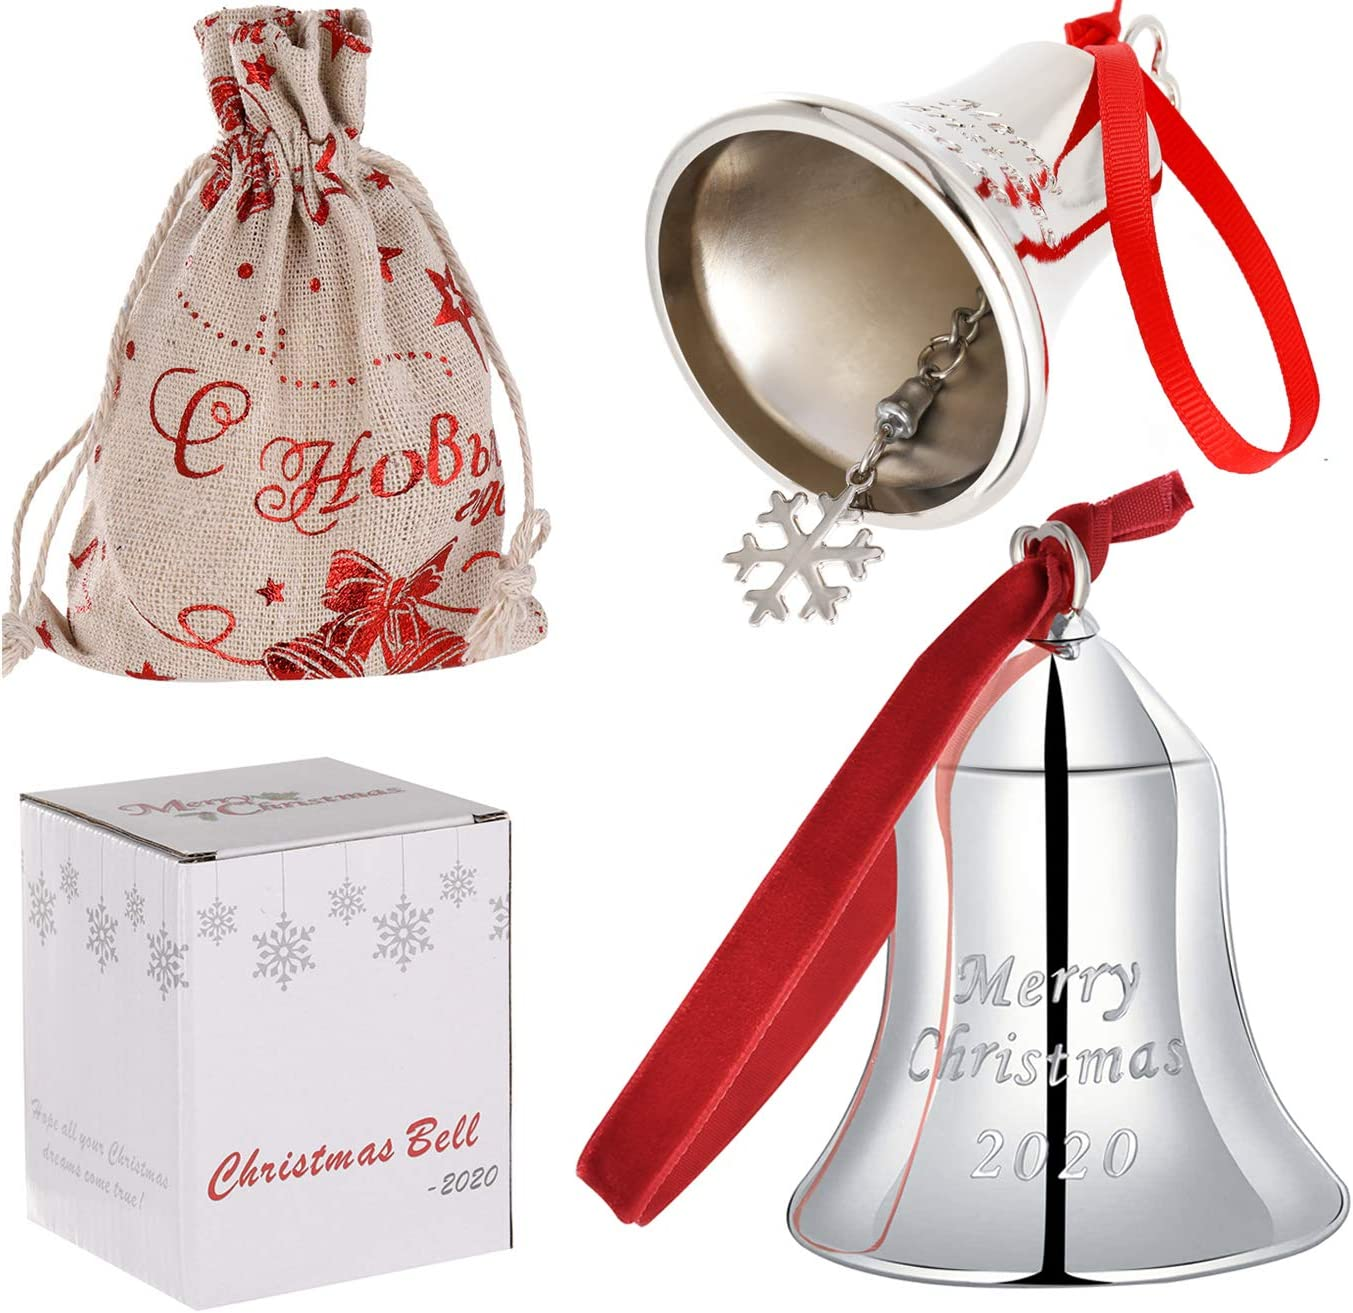 Silver Christmas Bell Ornaments Jingle Bells Pendants,Merry Christmas 2020 Holiday Bells with Gift Box and Red Ribbon Hanging on Christmas Tree Door Wedding Anniversary Decor (Silver Bell)